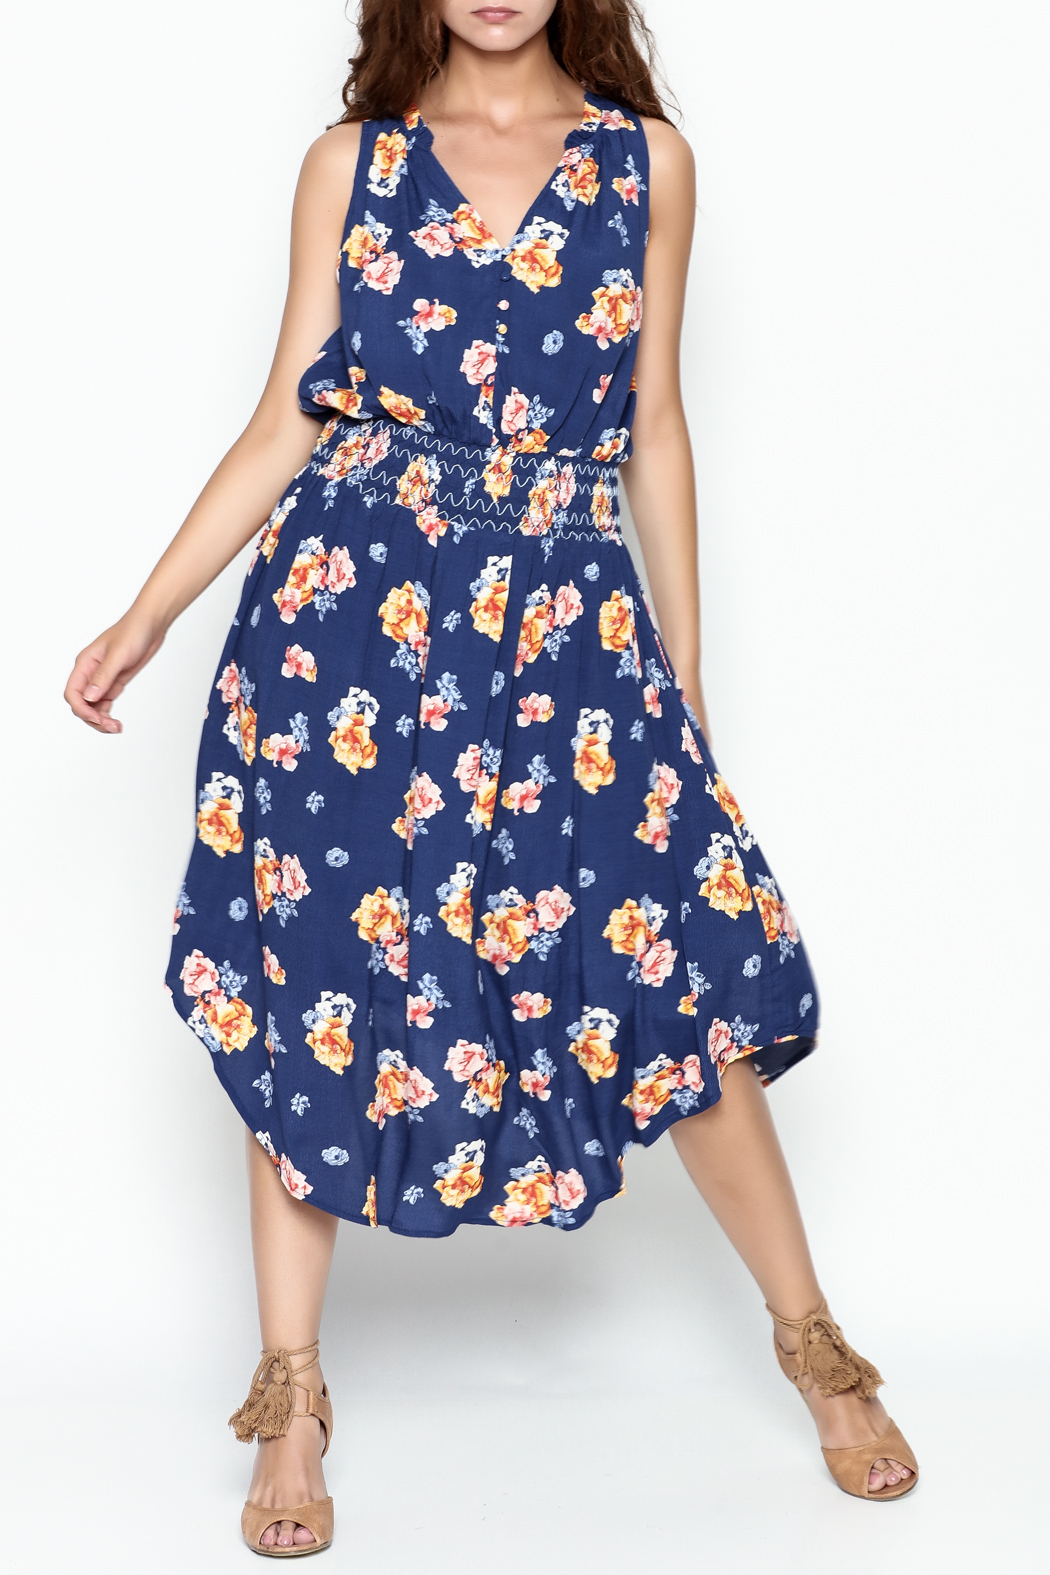 Current Air Bright Floral Dress - Main Image